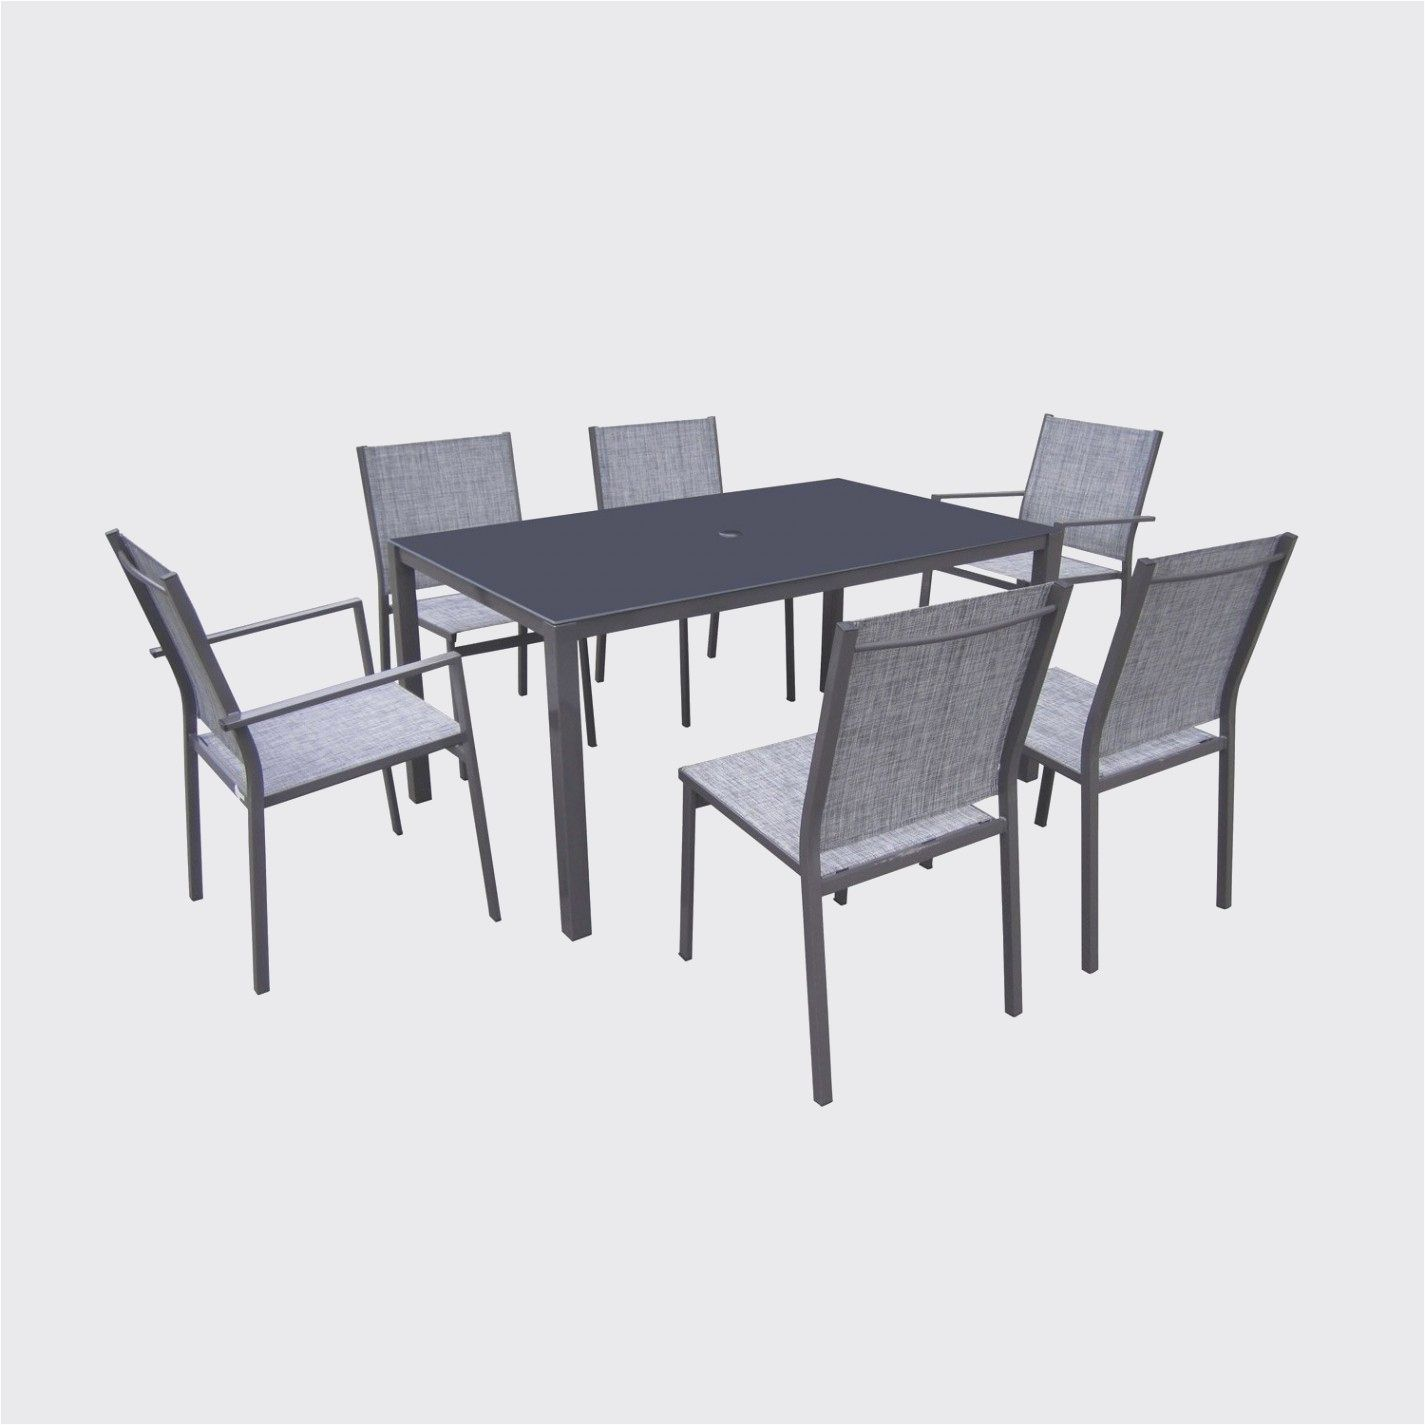 Table Chaise De Jardin Élégant Table Et Chaise Pliante Table Et Chaise Pliante with Table Of 30 Charmant Table Chaise De Jardin